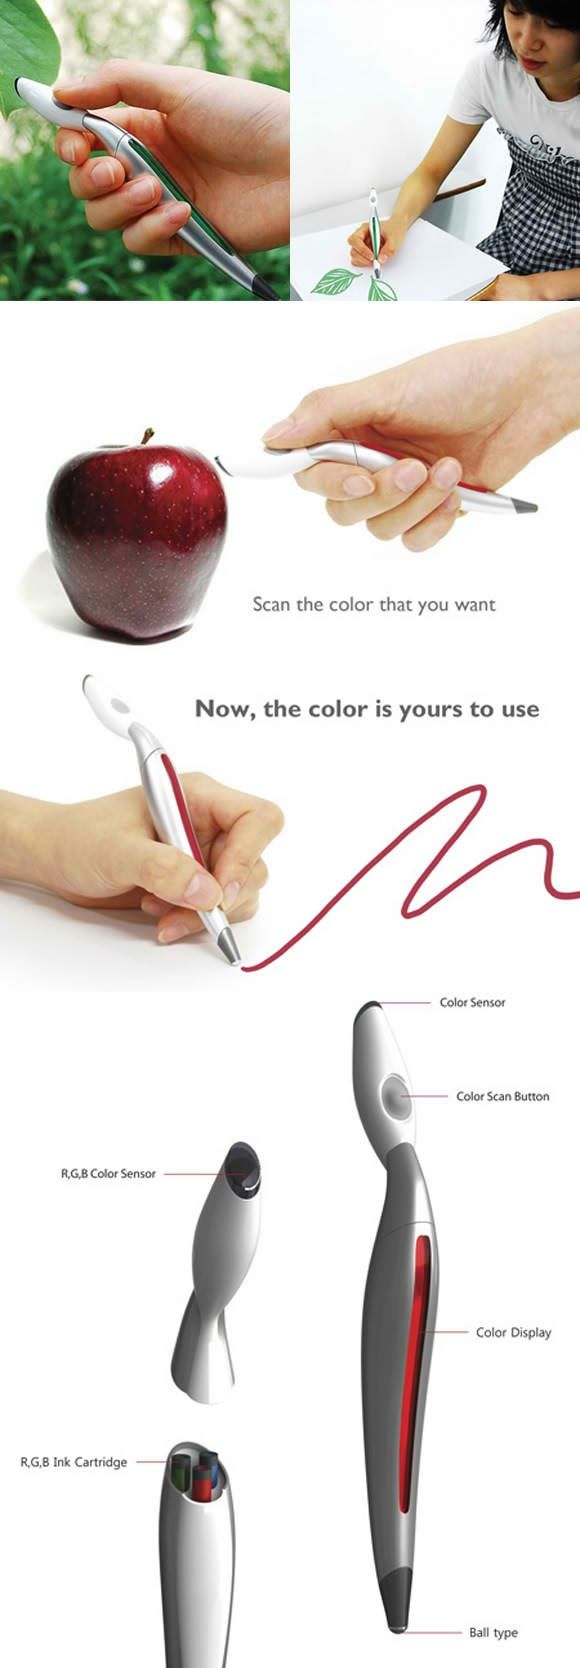 Pen scans any color then allows you to draw using that color.